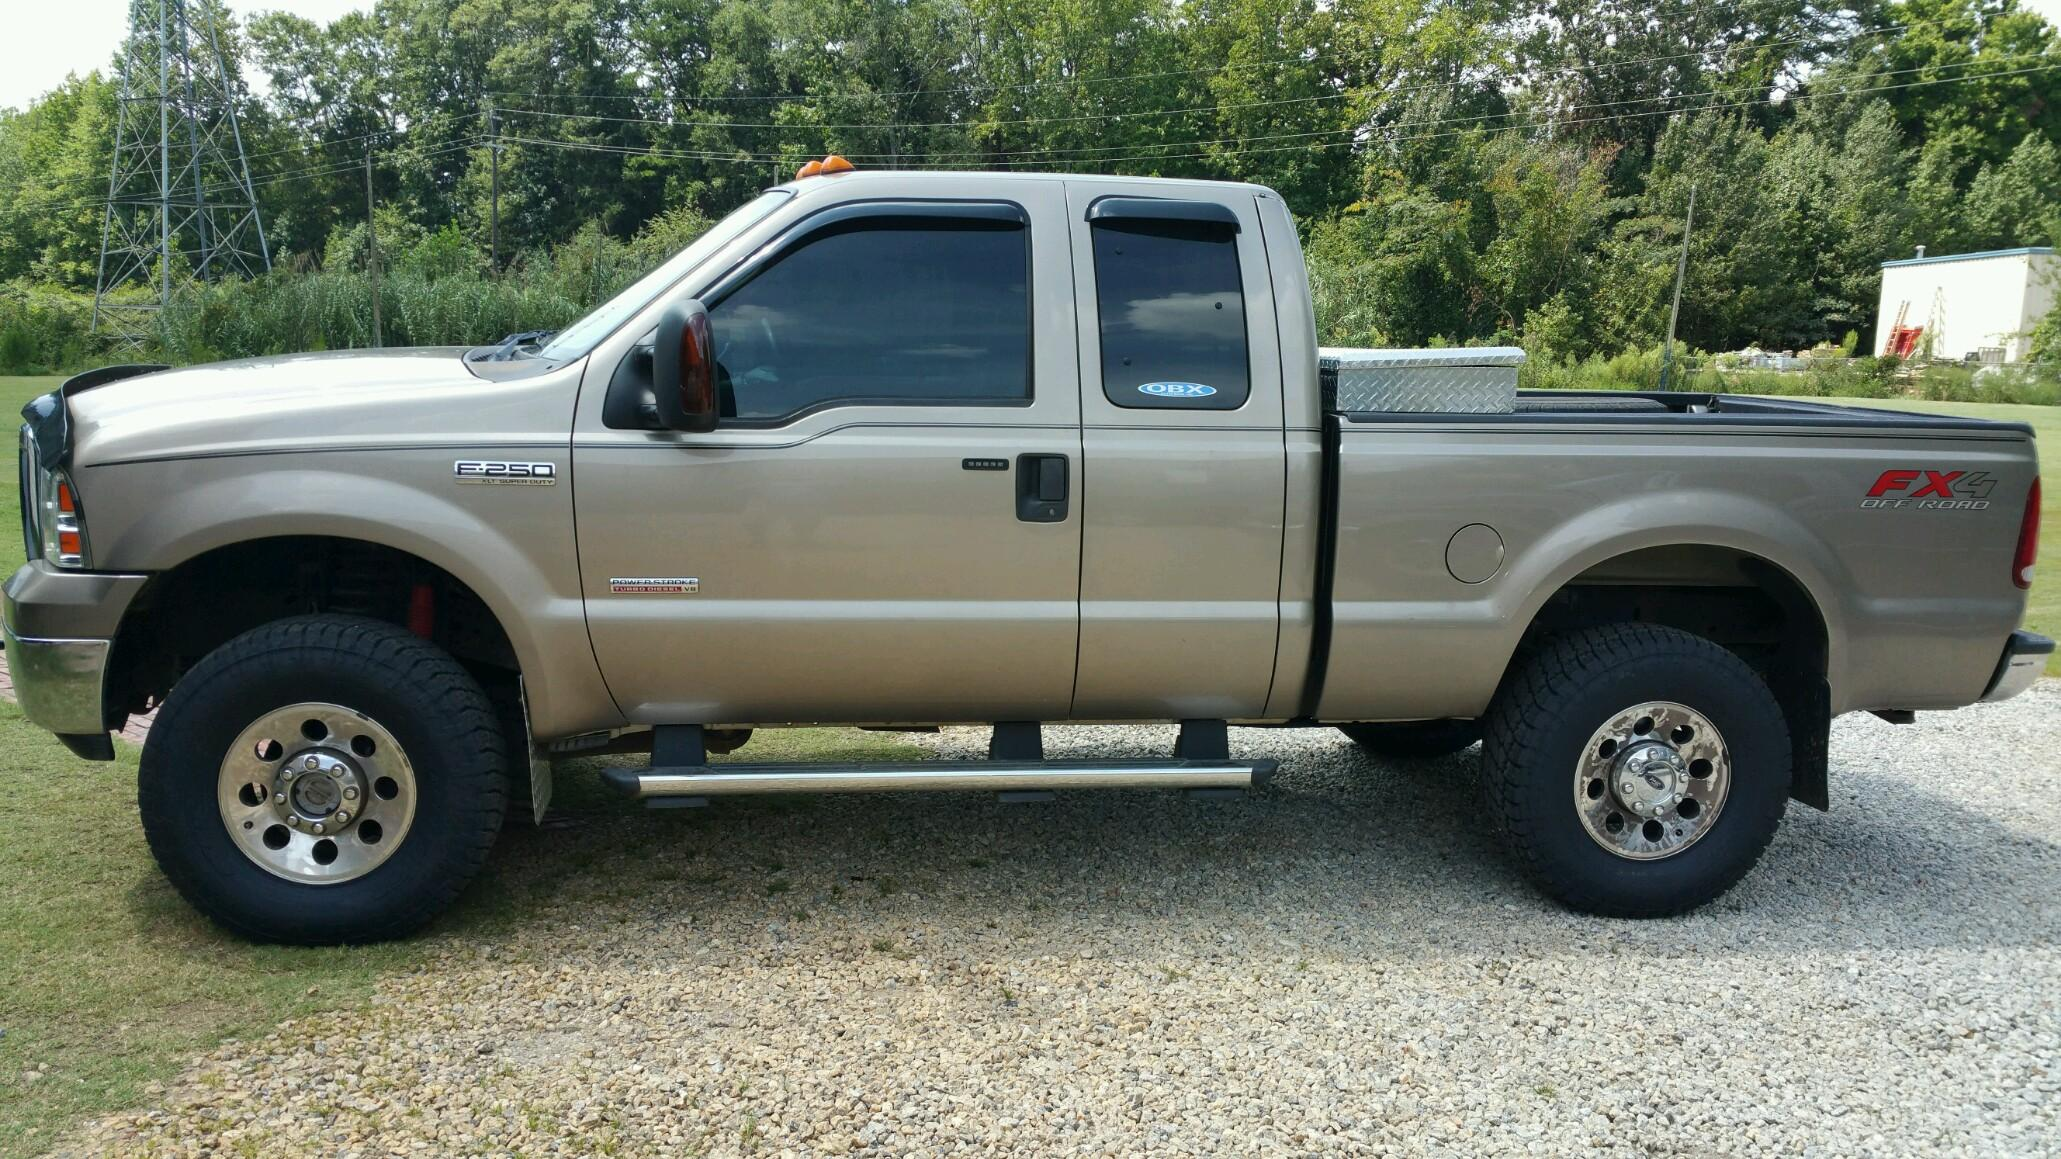 05' F250 with a Rough Country Leveling kit and Nitto Terra Grapler G2s